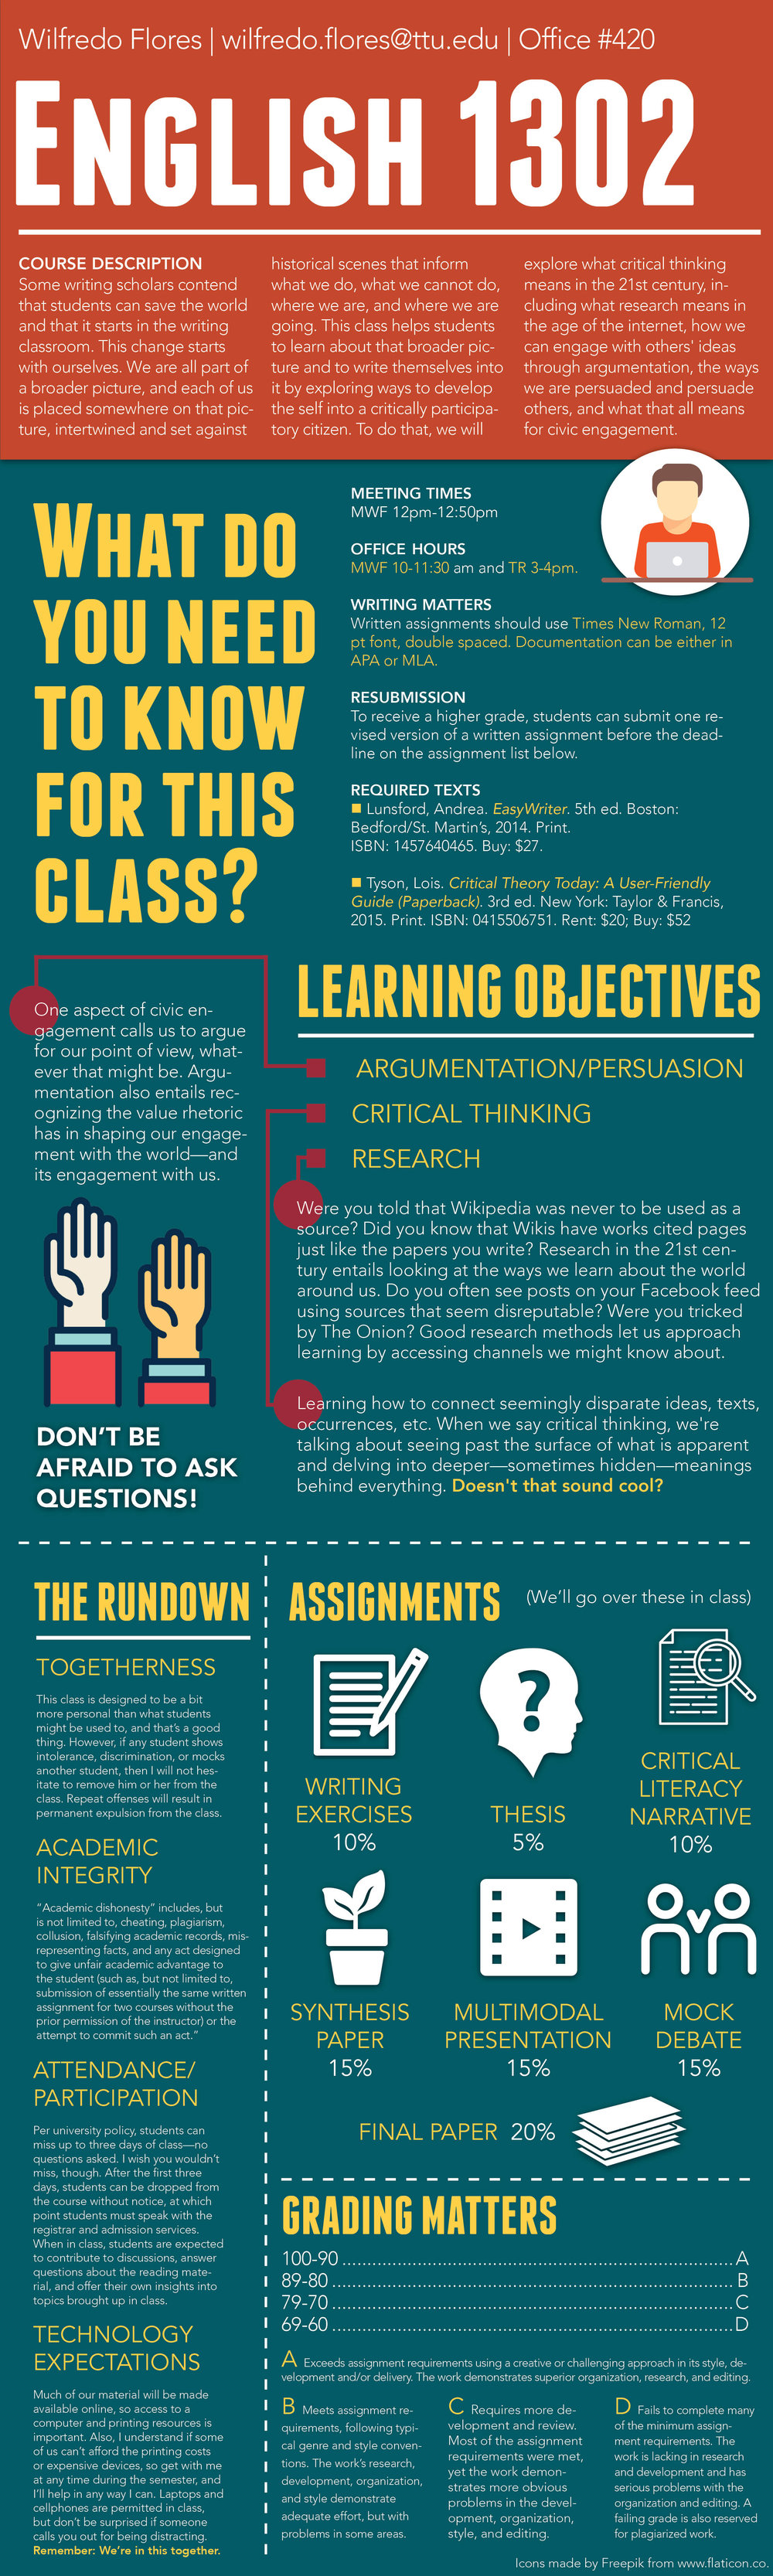 Infographic Syllabus   This infographic was created in Dr. Sean Zdenek's Document Design class. It represents a syllabus I created for an assignment in Dr. Rich Rice's Histories and Theories of Composition class in the Fall 2015 semester. It can be viewed and downloaded as a PDF  here .